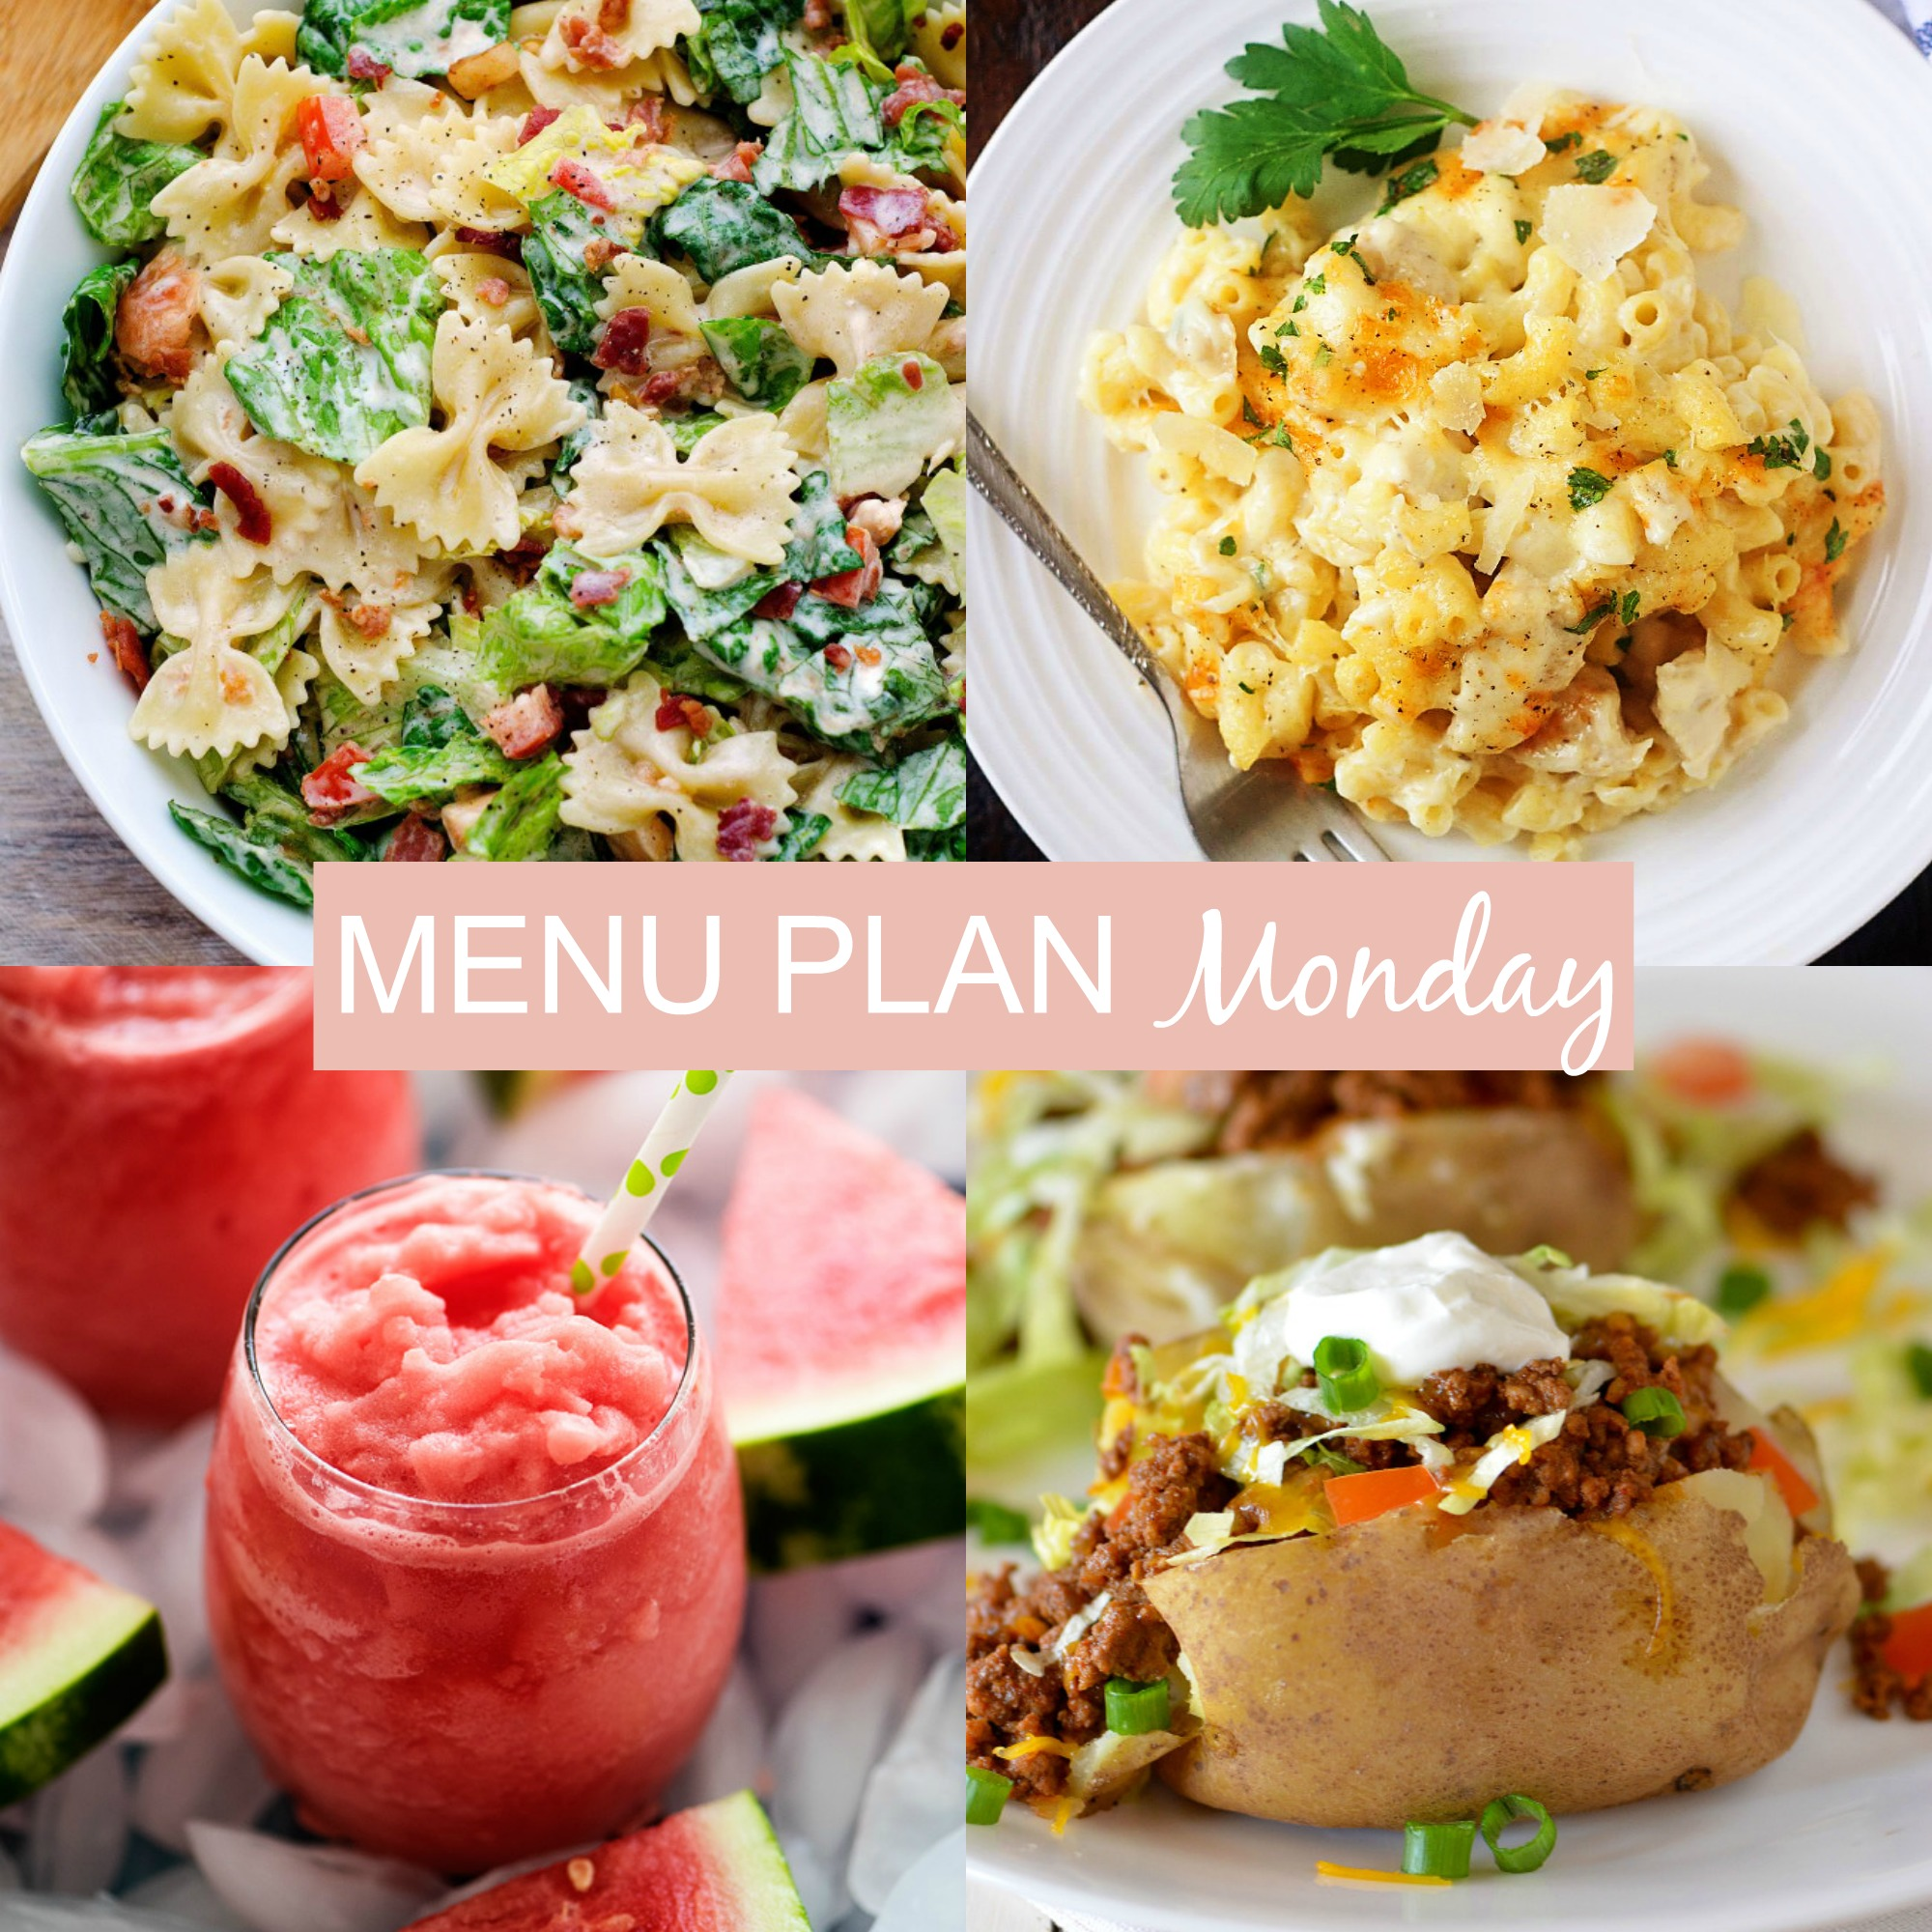 Menu Plan Monday #243